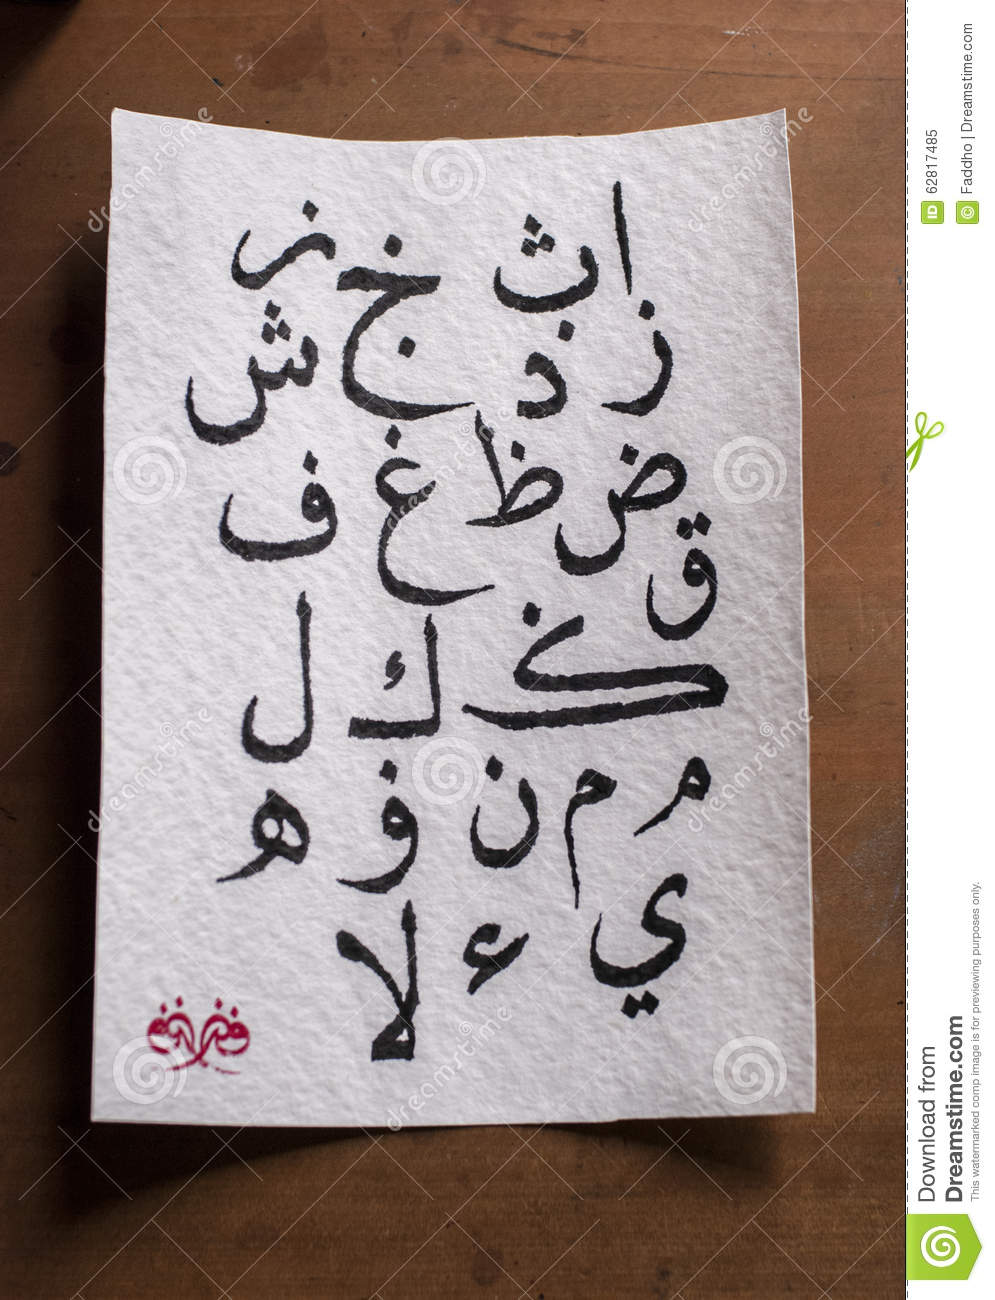 Arabic calligraphy of basic nasakh letters on rough paper